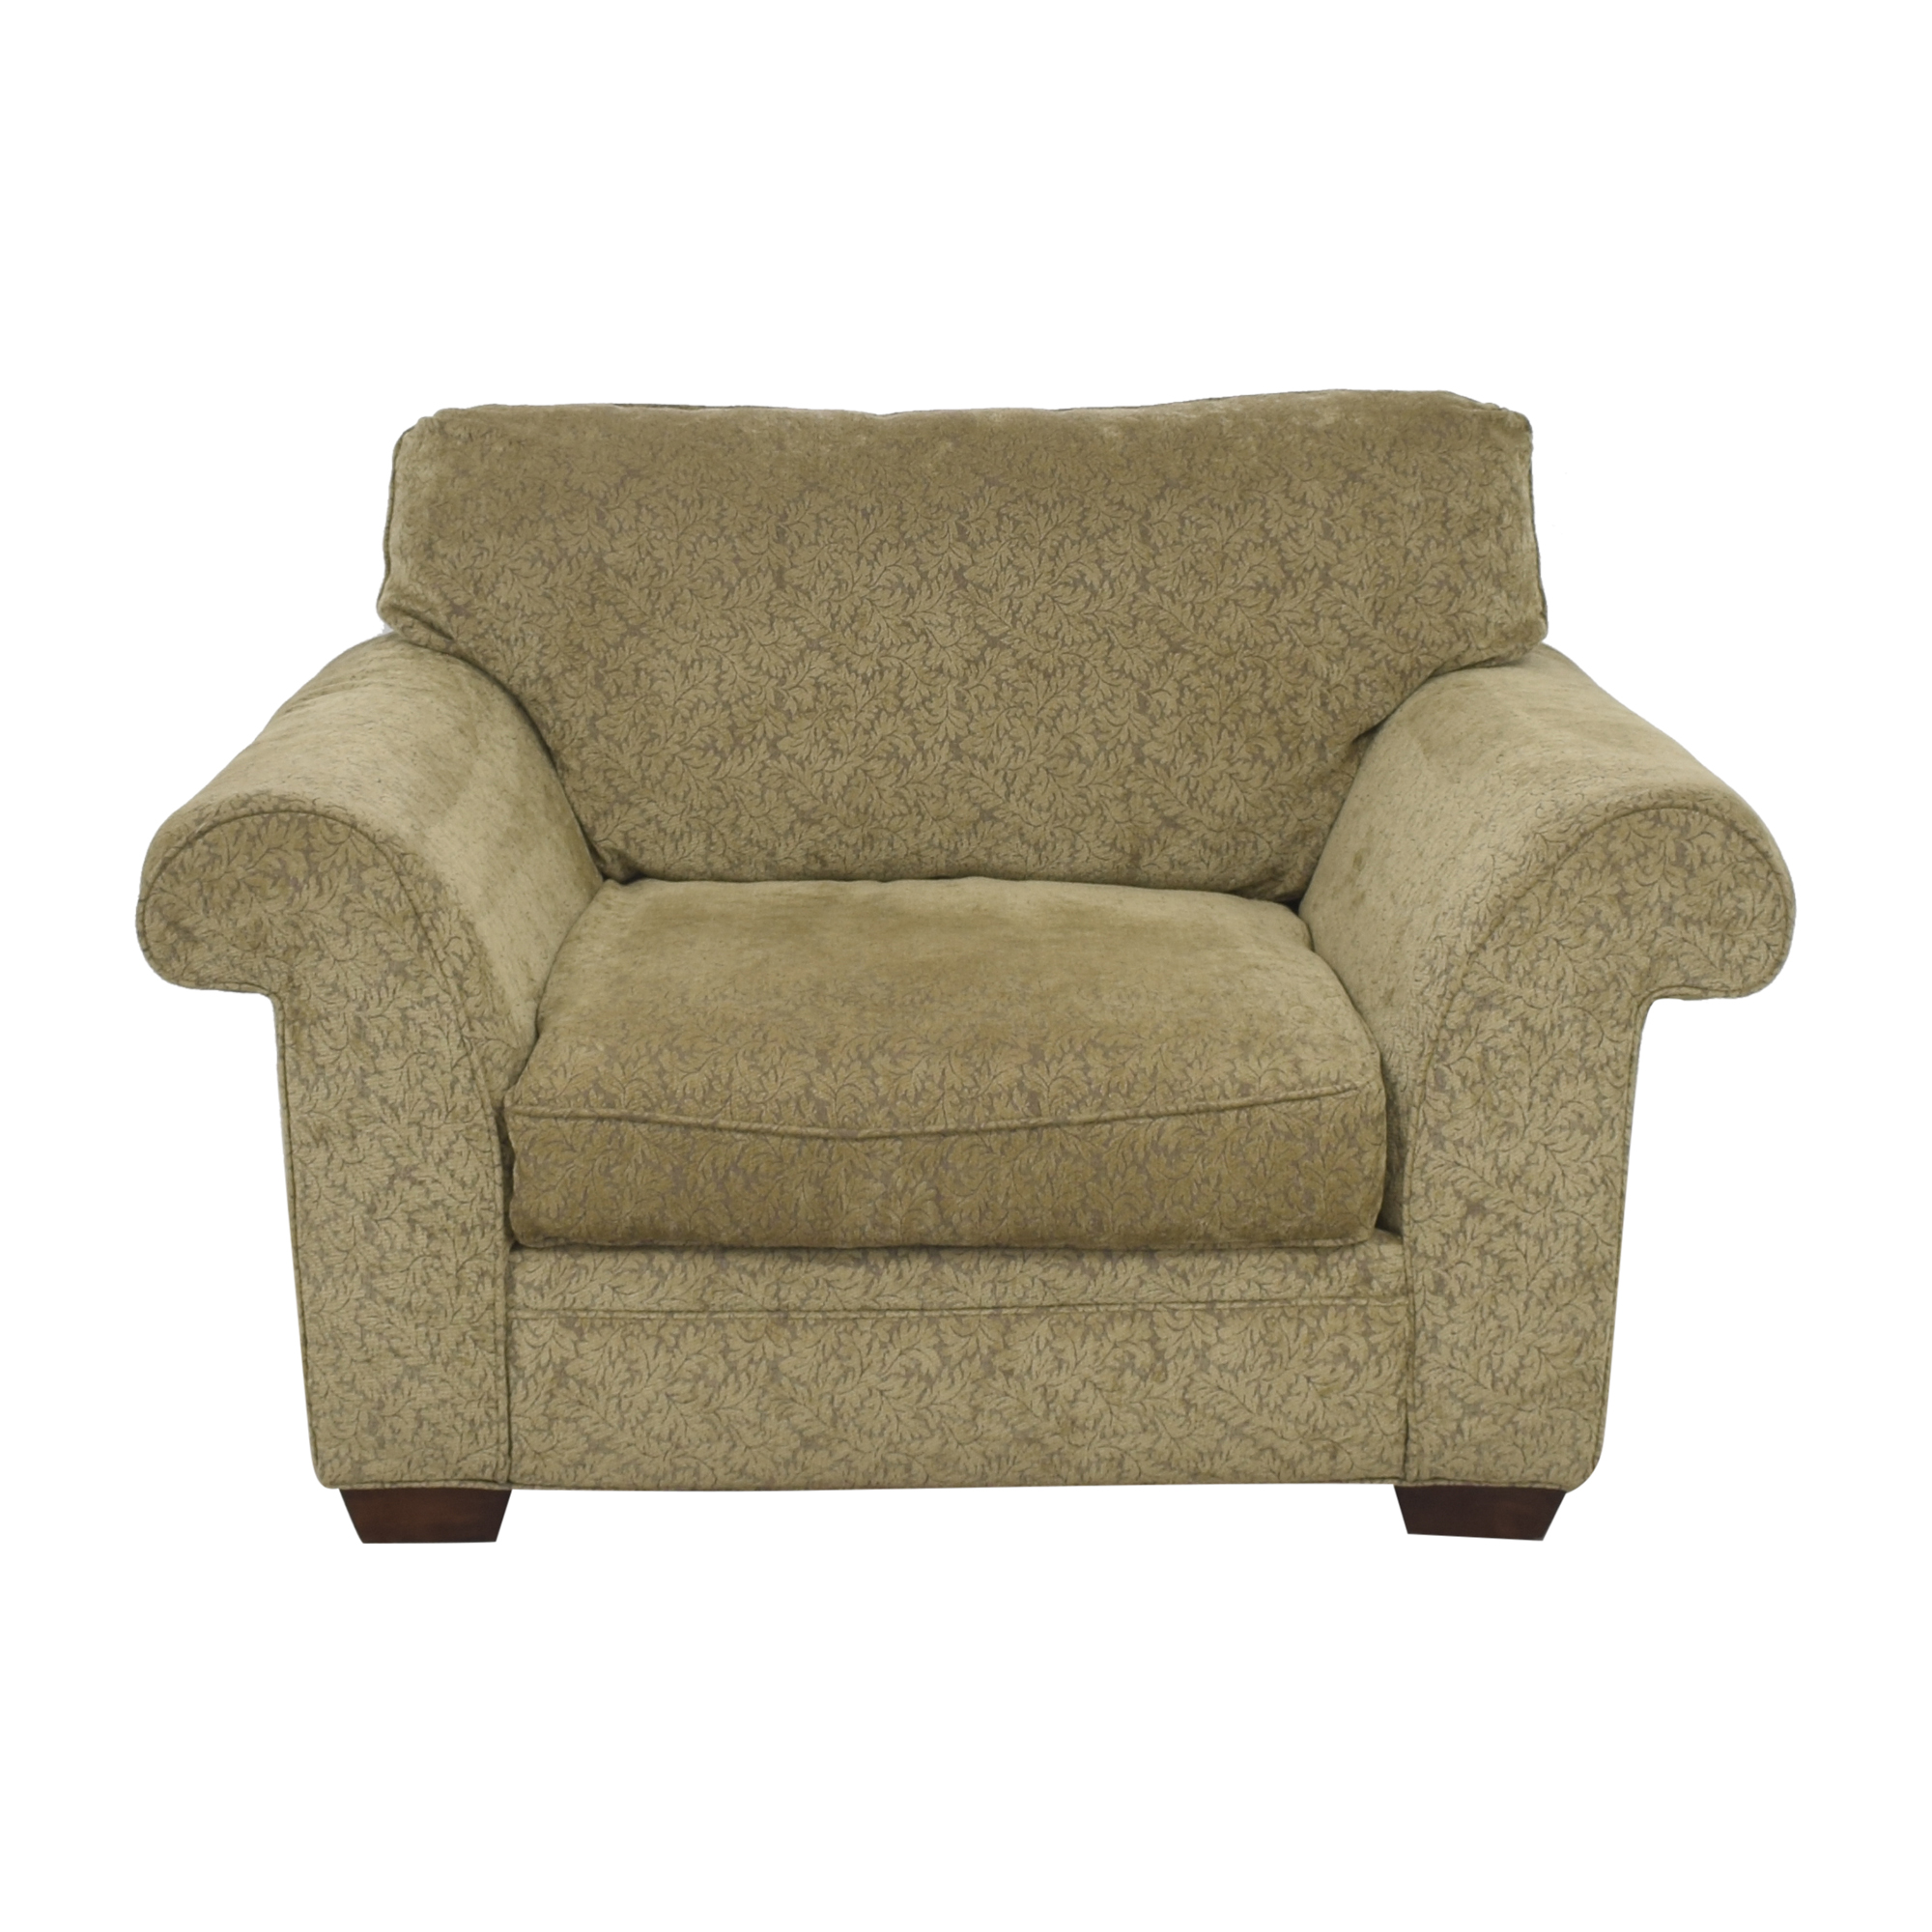 Accent Lounge Chair used